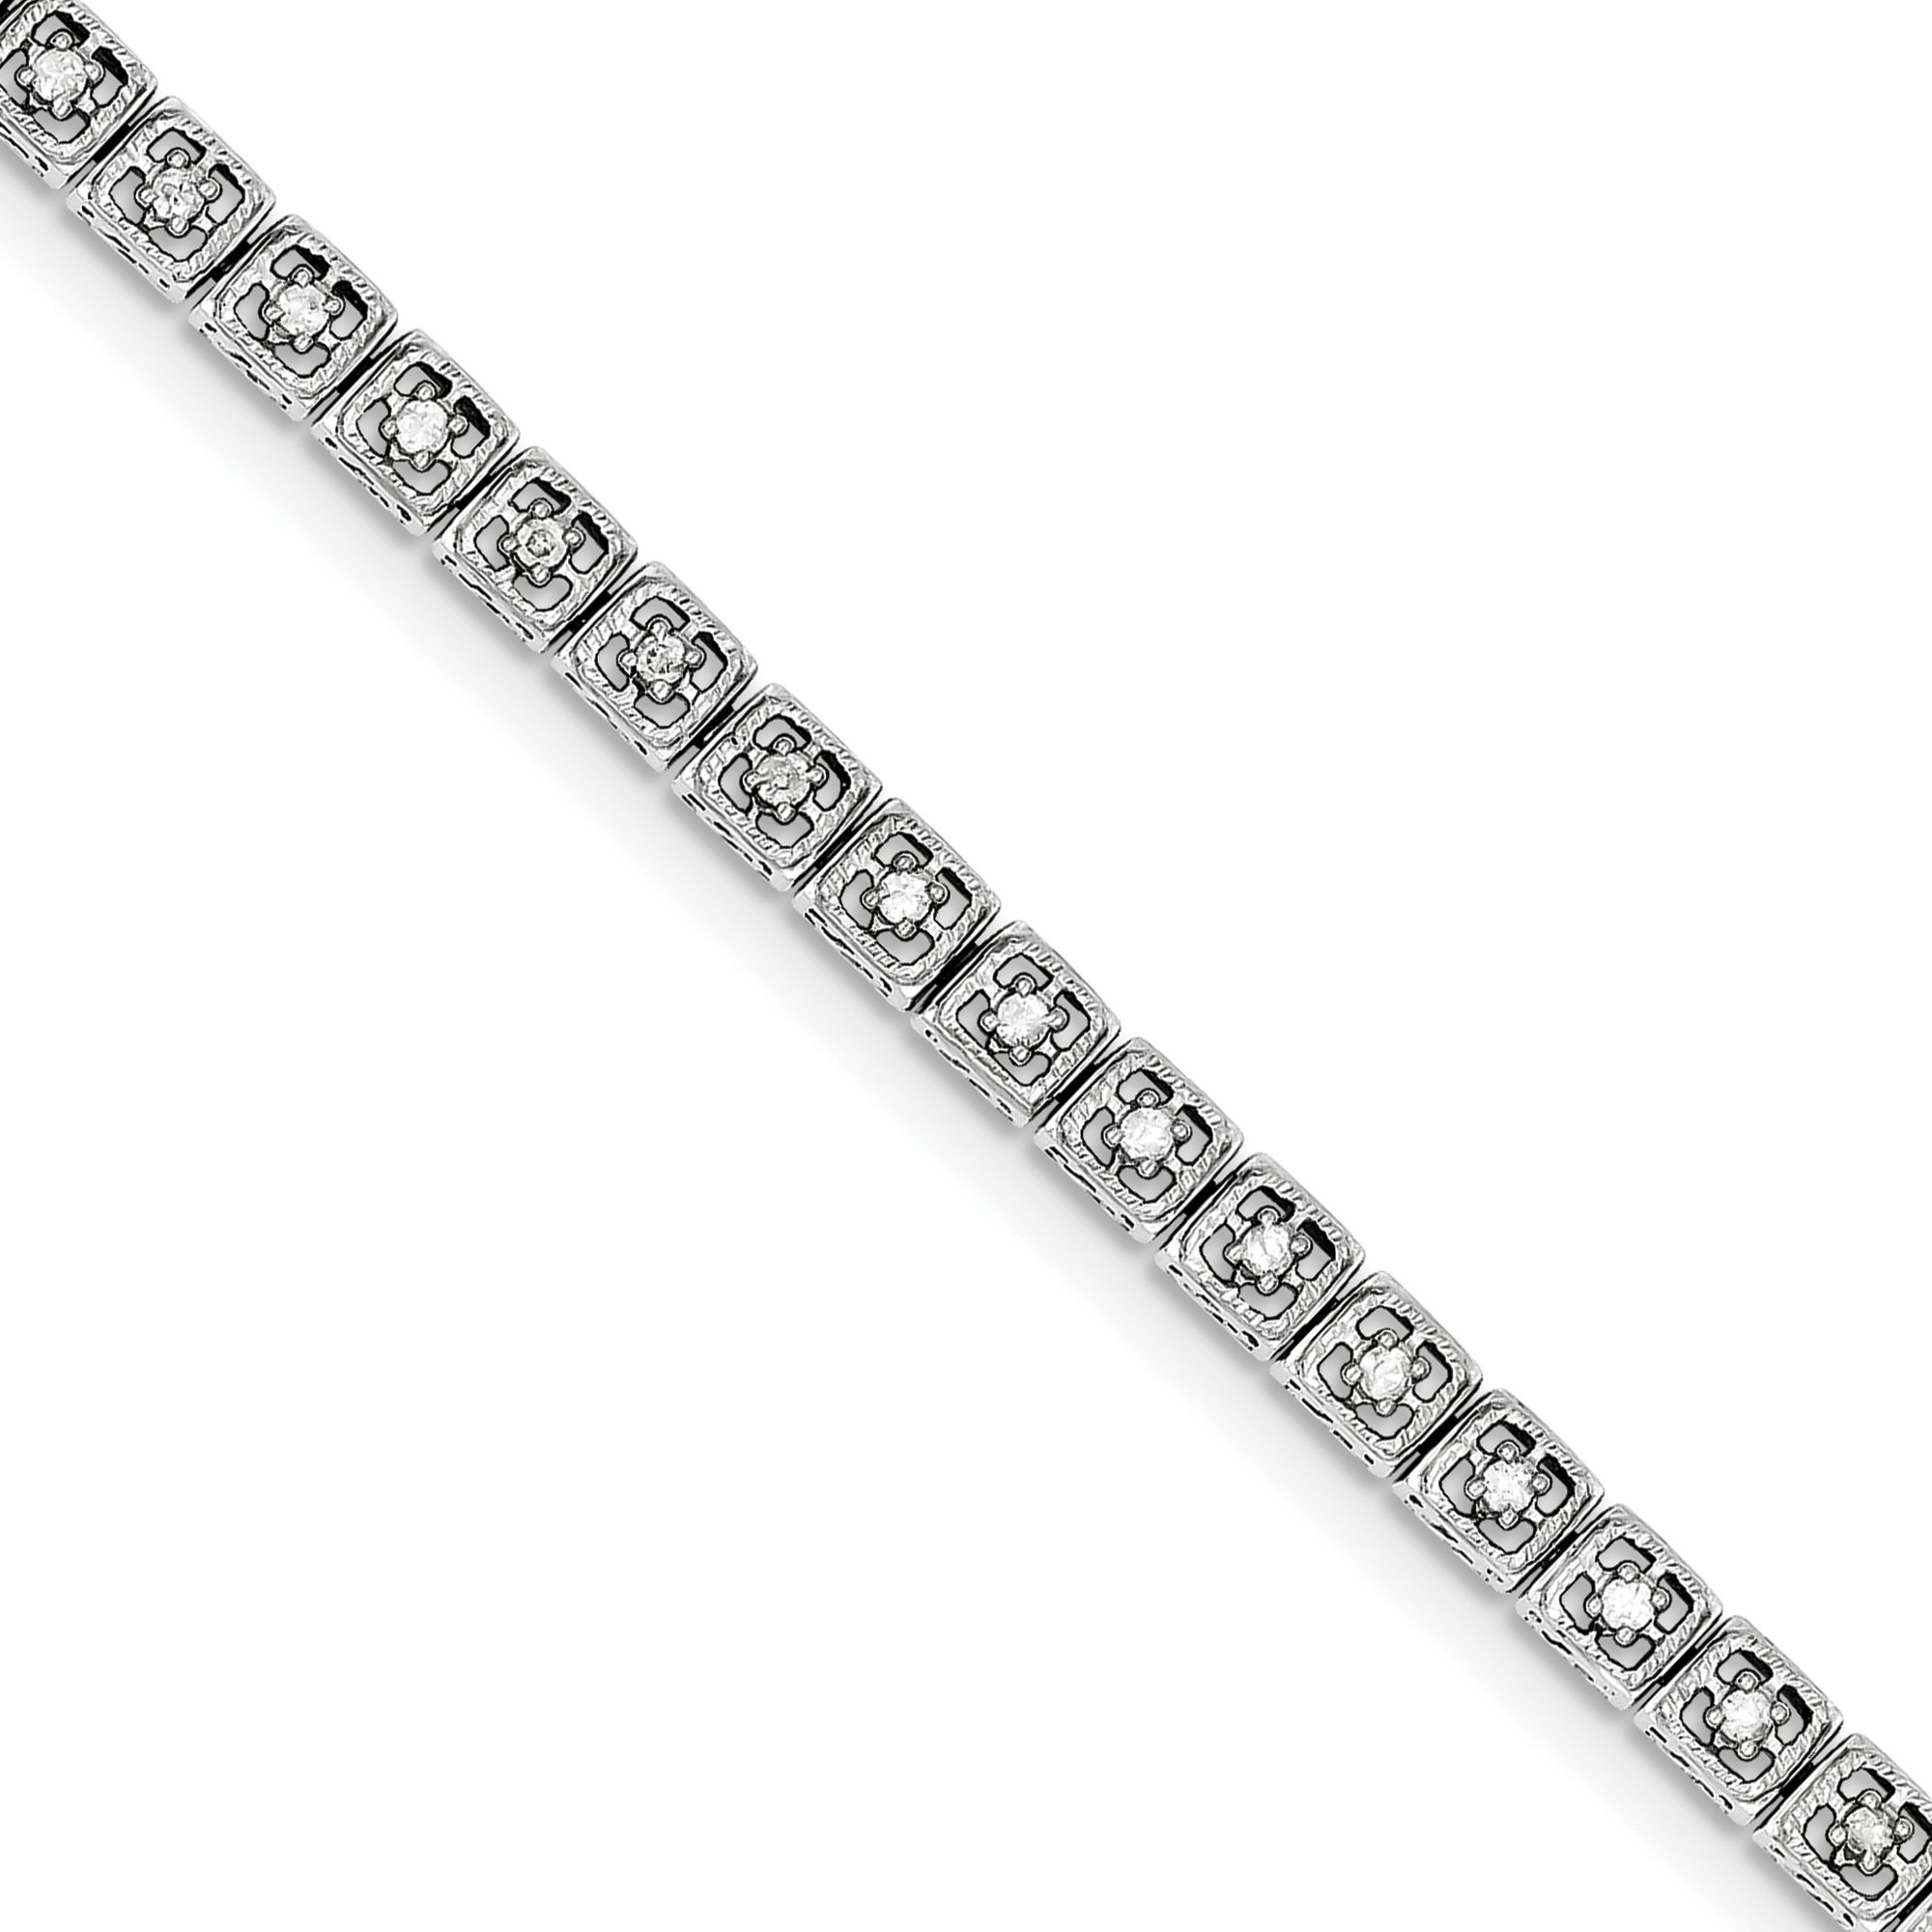 ICE CARATS 925 Sterling Silver Diamond Square Link Bracelet 7 Inch Fine Jewelry Gift Set For Women Heart